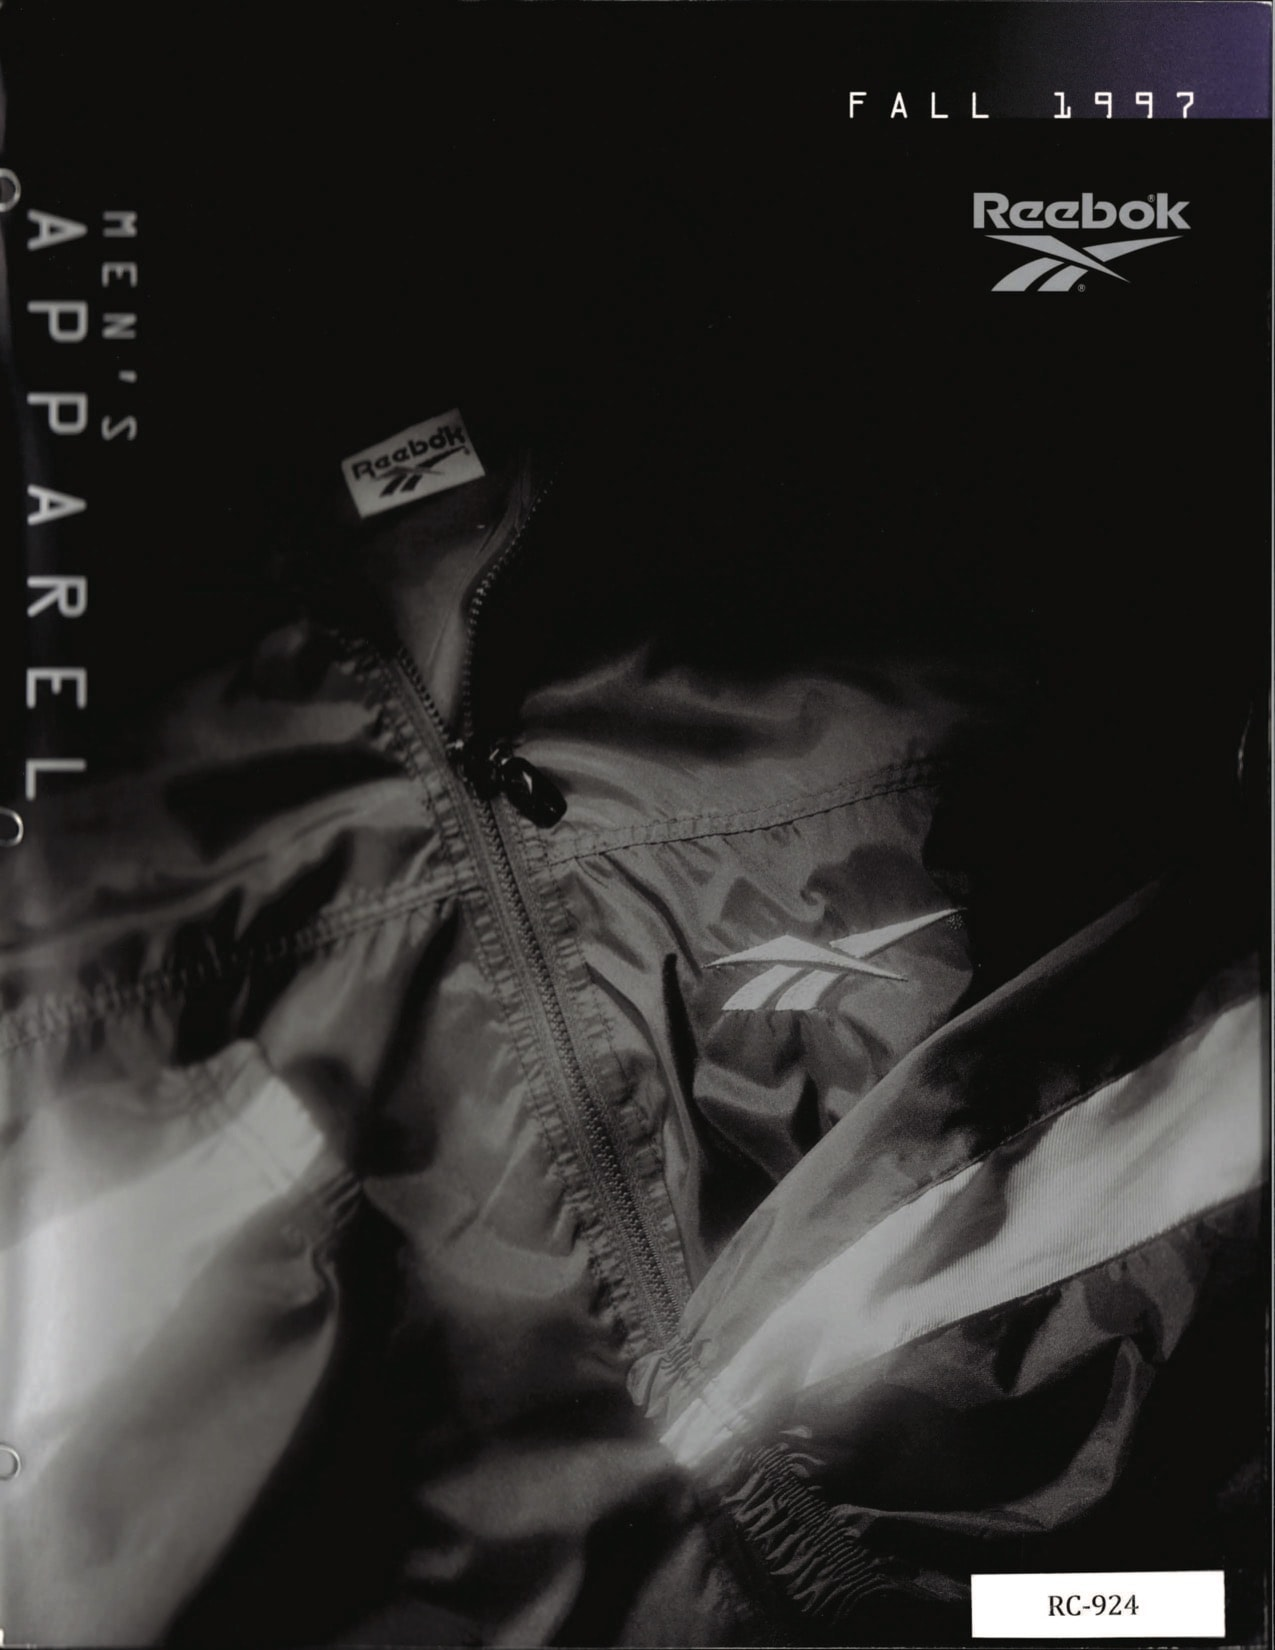 NEW Les Mills Collection Is Here. Reebok Email Archive